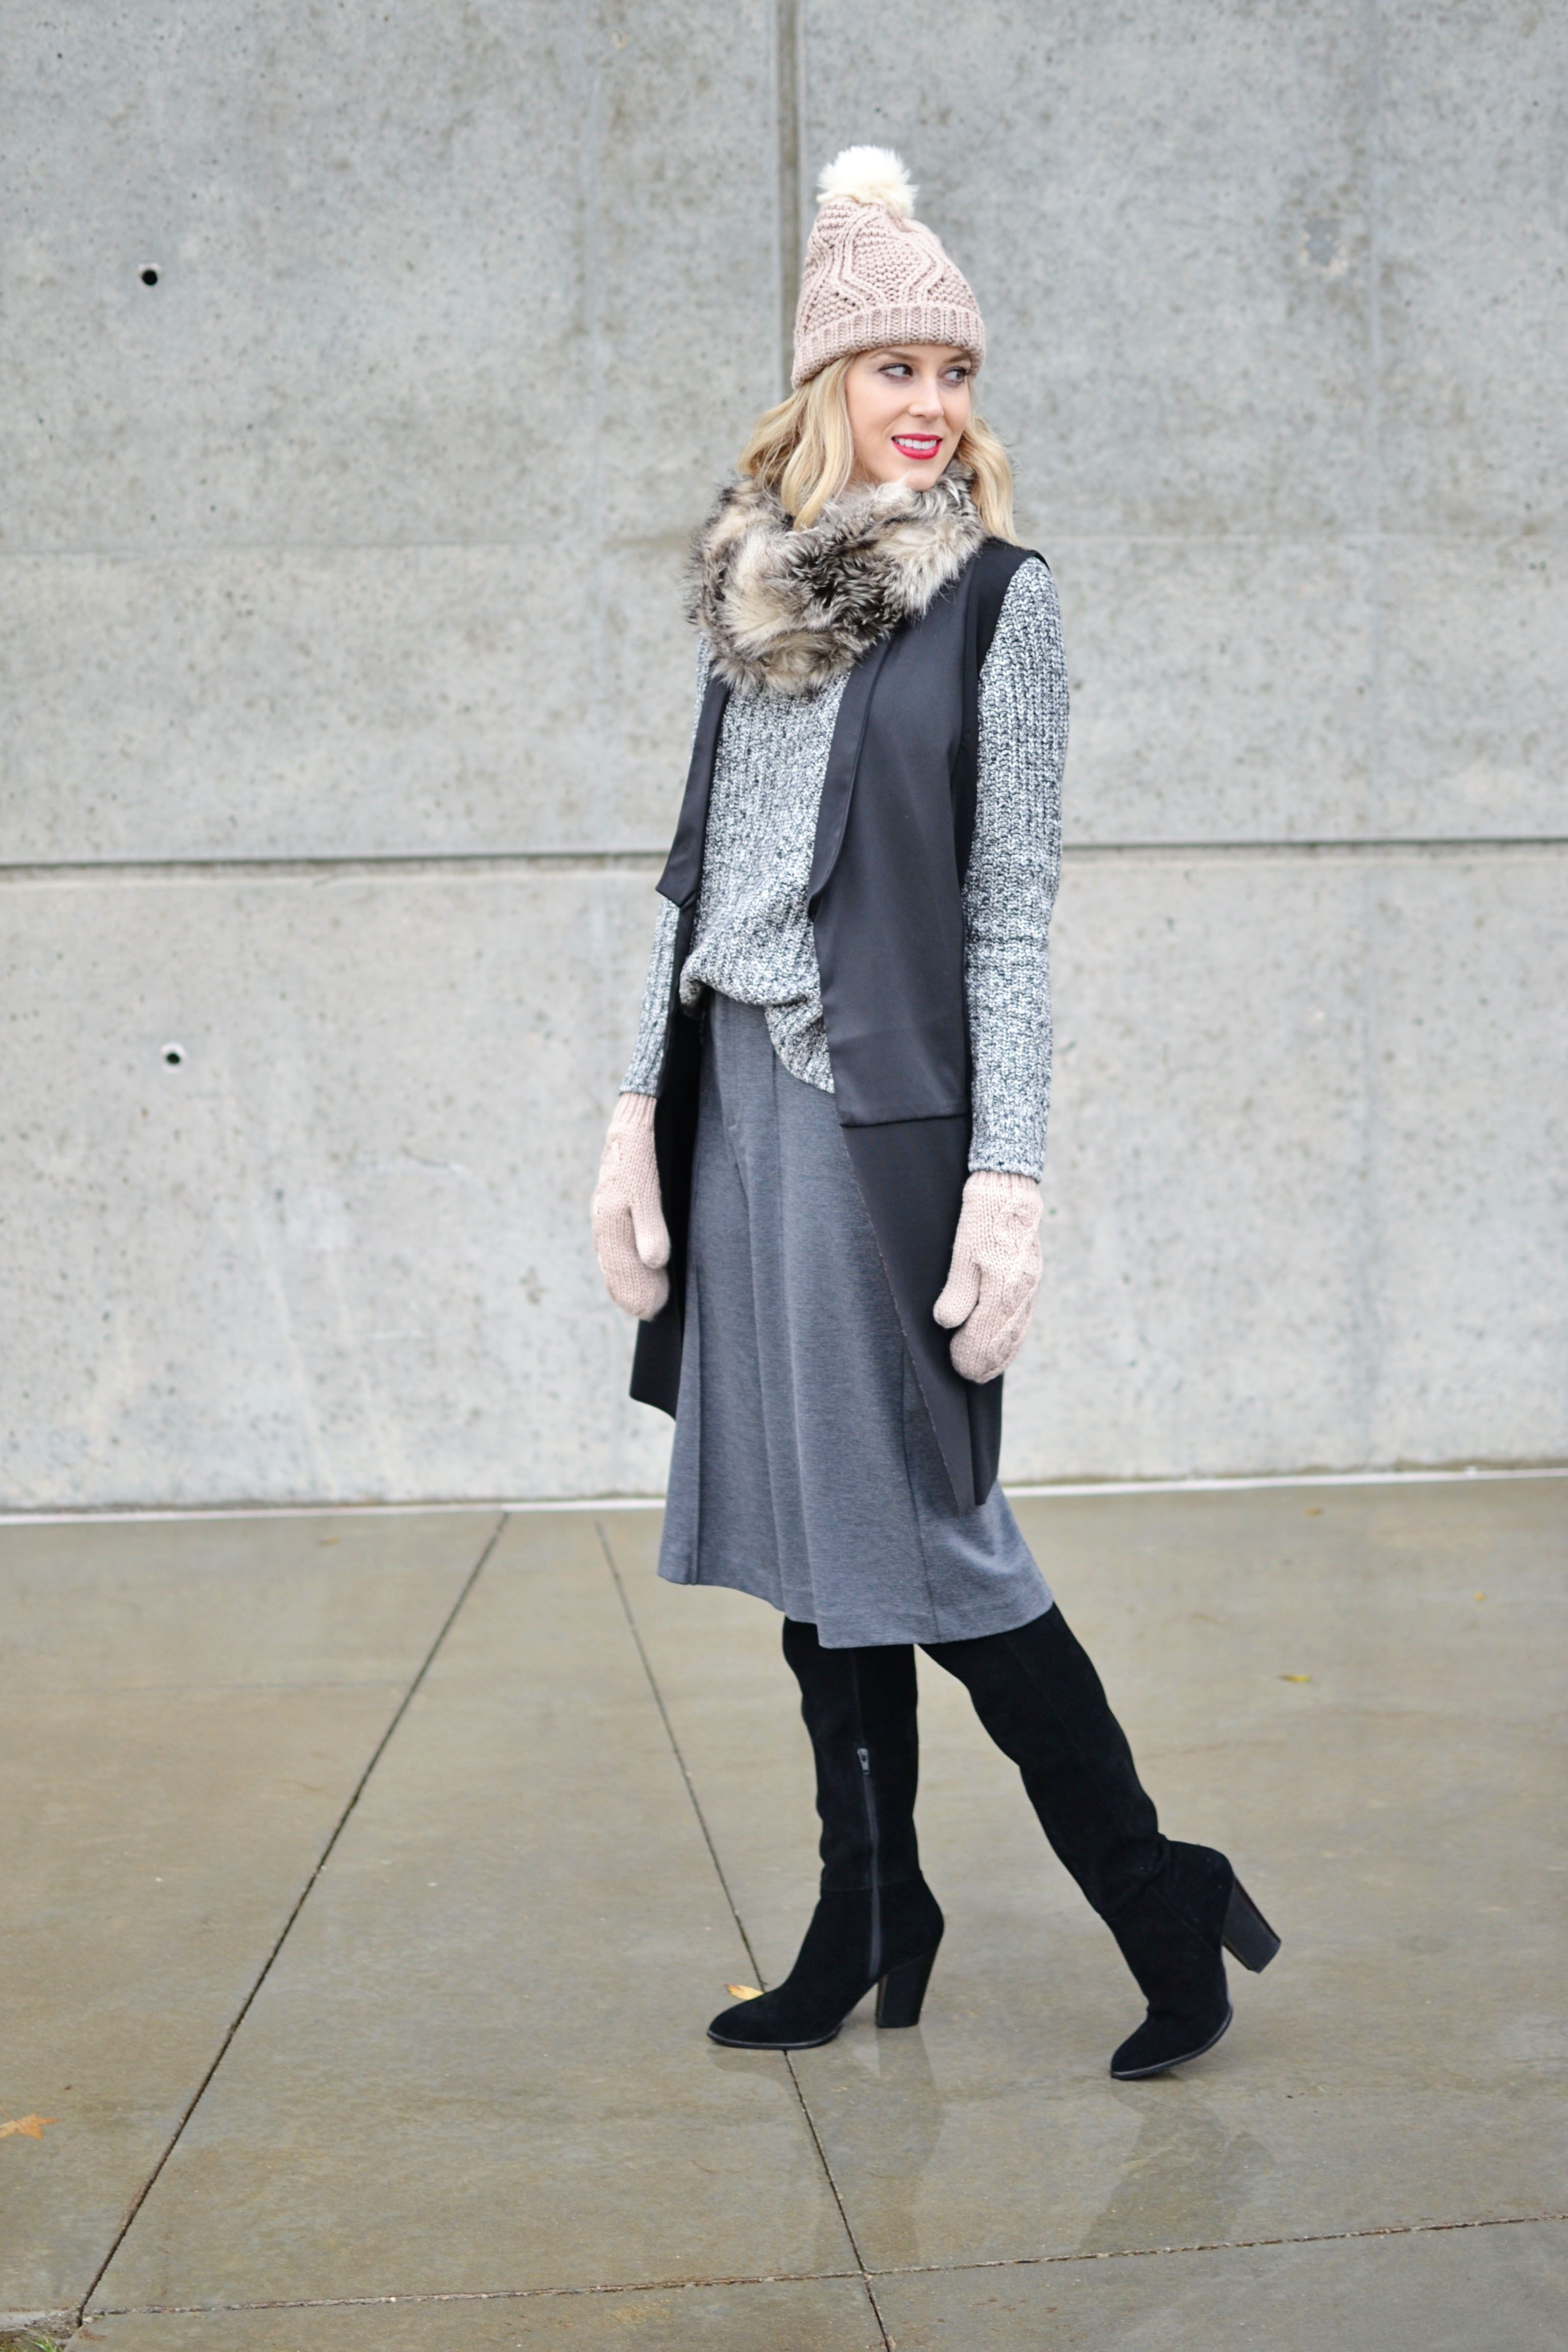 Old Navy sweater, culottes, and accessories, OTK boots, long vest